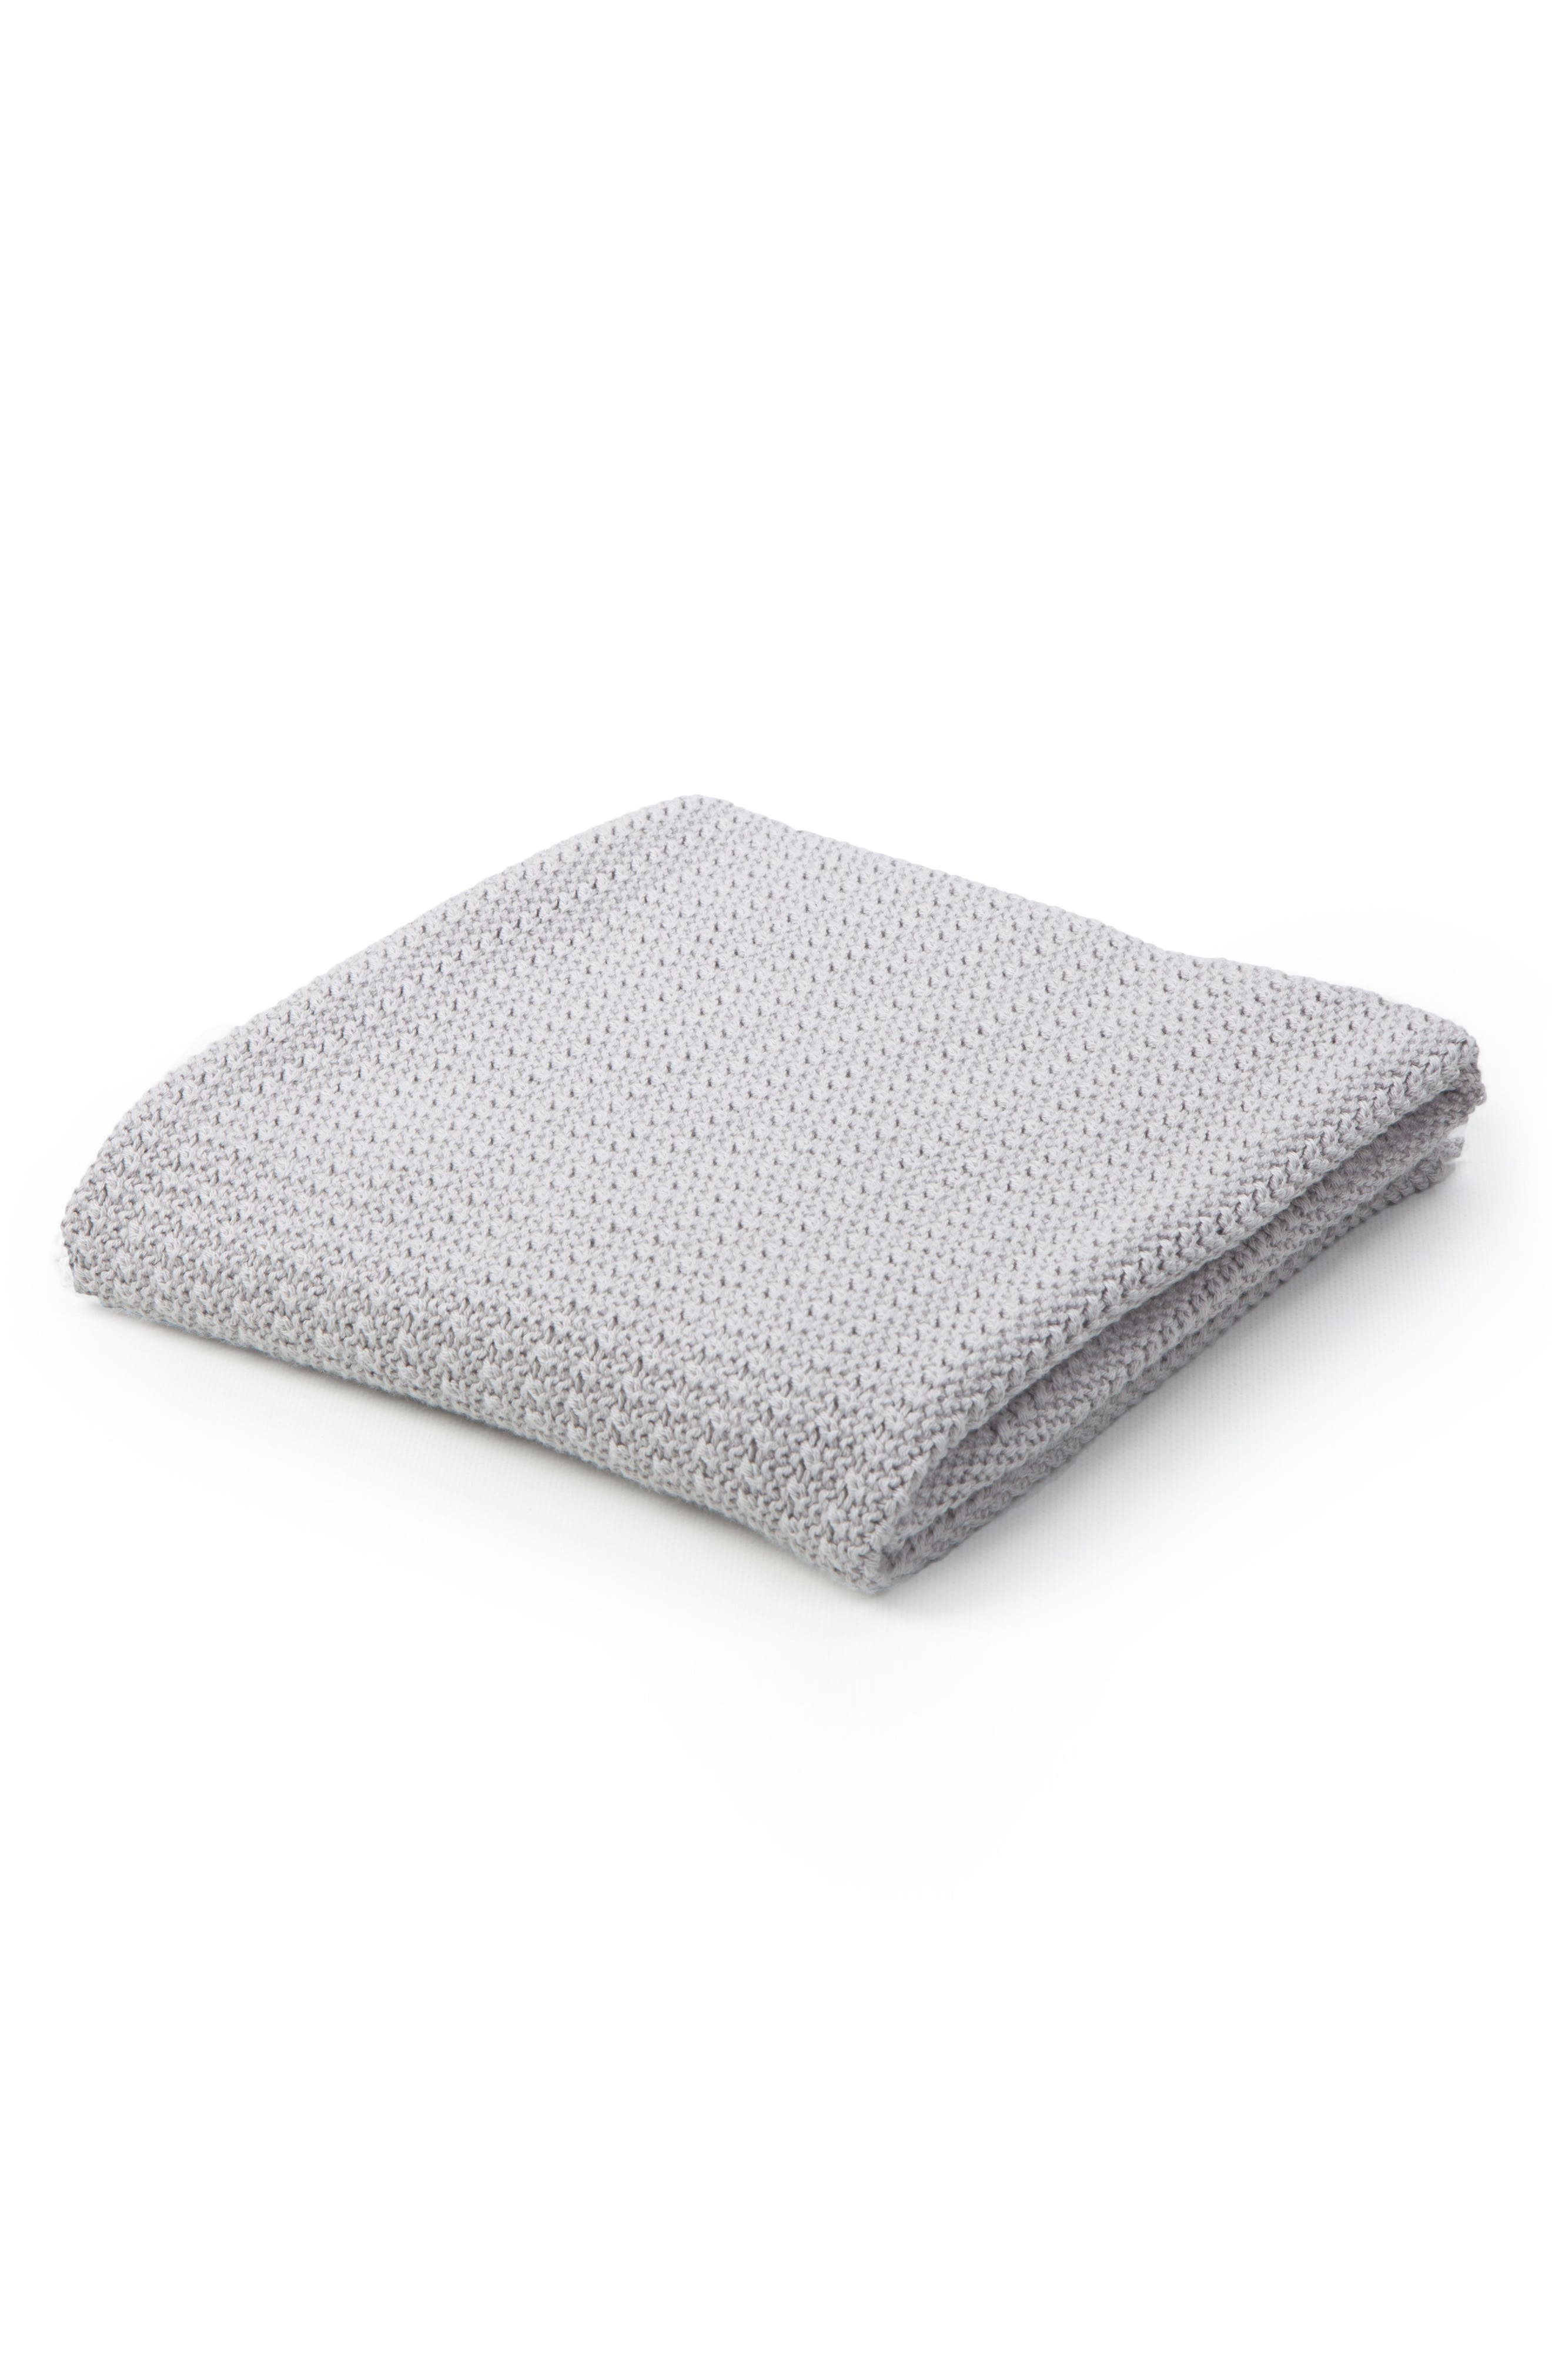 Cellular Cotton Baby Blanket,                         Main,                         color, 020